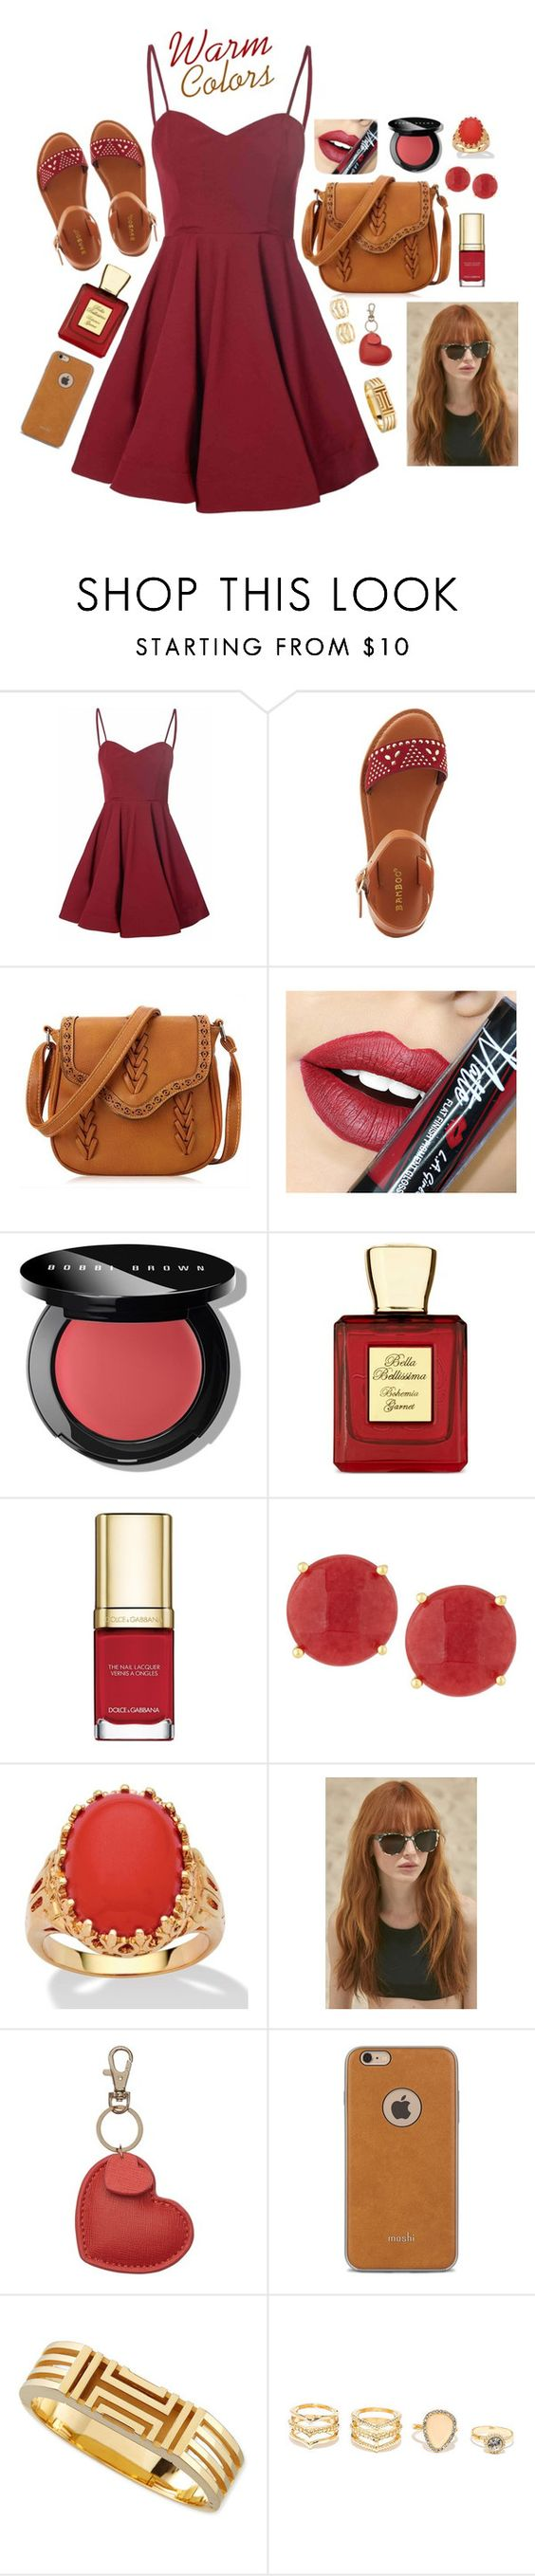 """""""Untitled #109"""" by bella9o ❤ liked on Polyvore featuring Glamorous, Bamboo, Fiebiger, Bobbi Brown Cosmetics, Bella Bellissima, Dolce&Gabbana, Panacea, Palm Beach Jewelry, Prism and Moshi"""